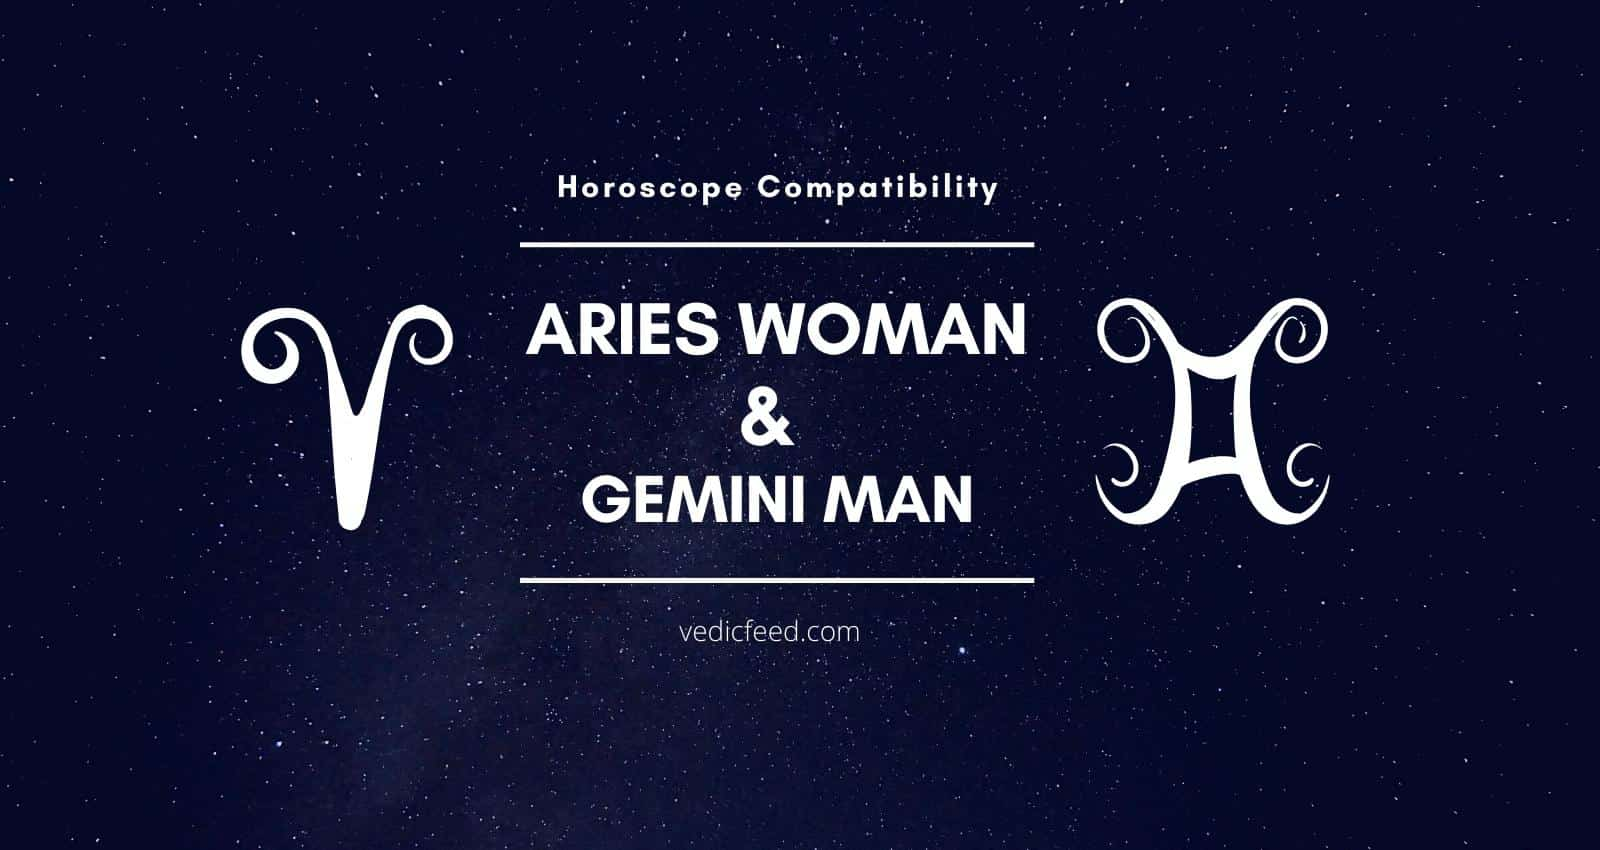 Aries Woman and Gemini Man Compatibility